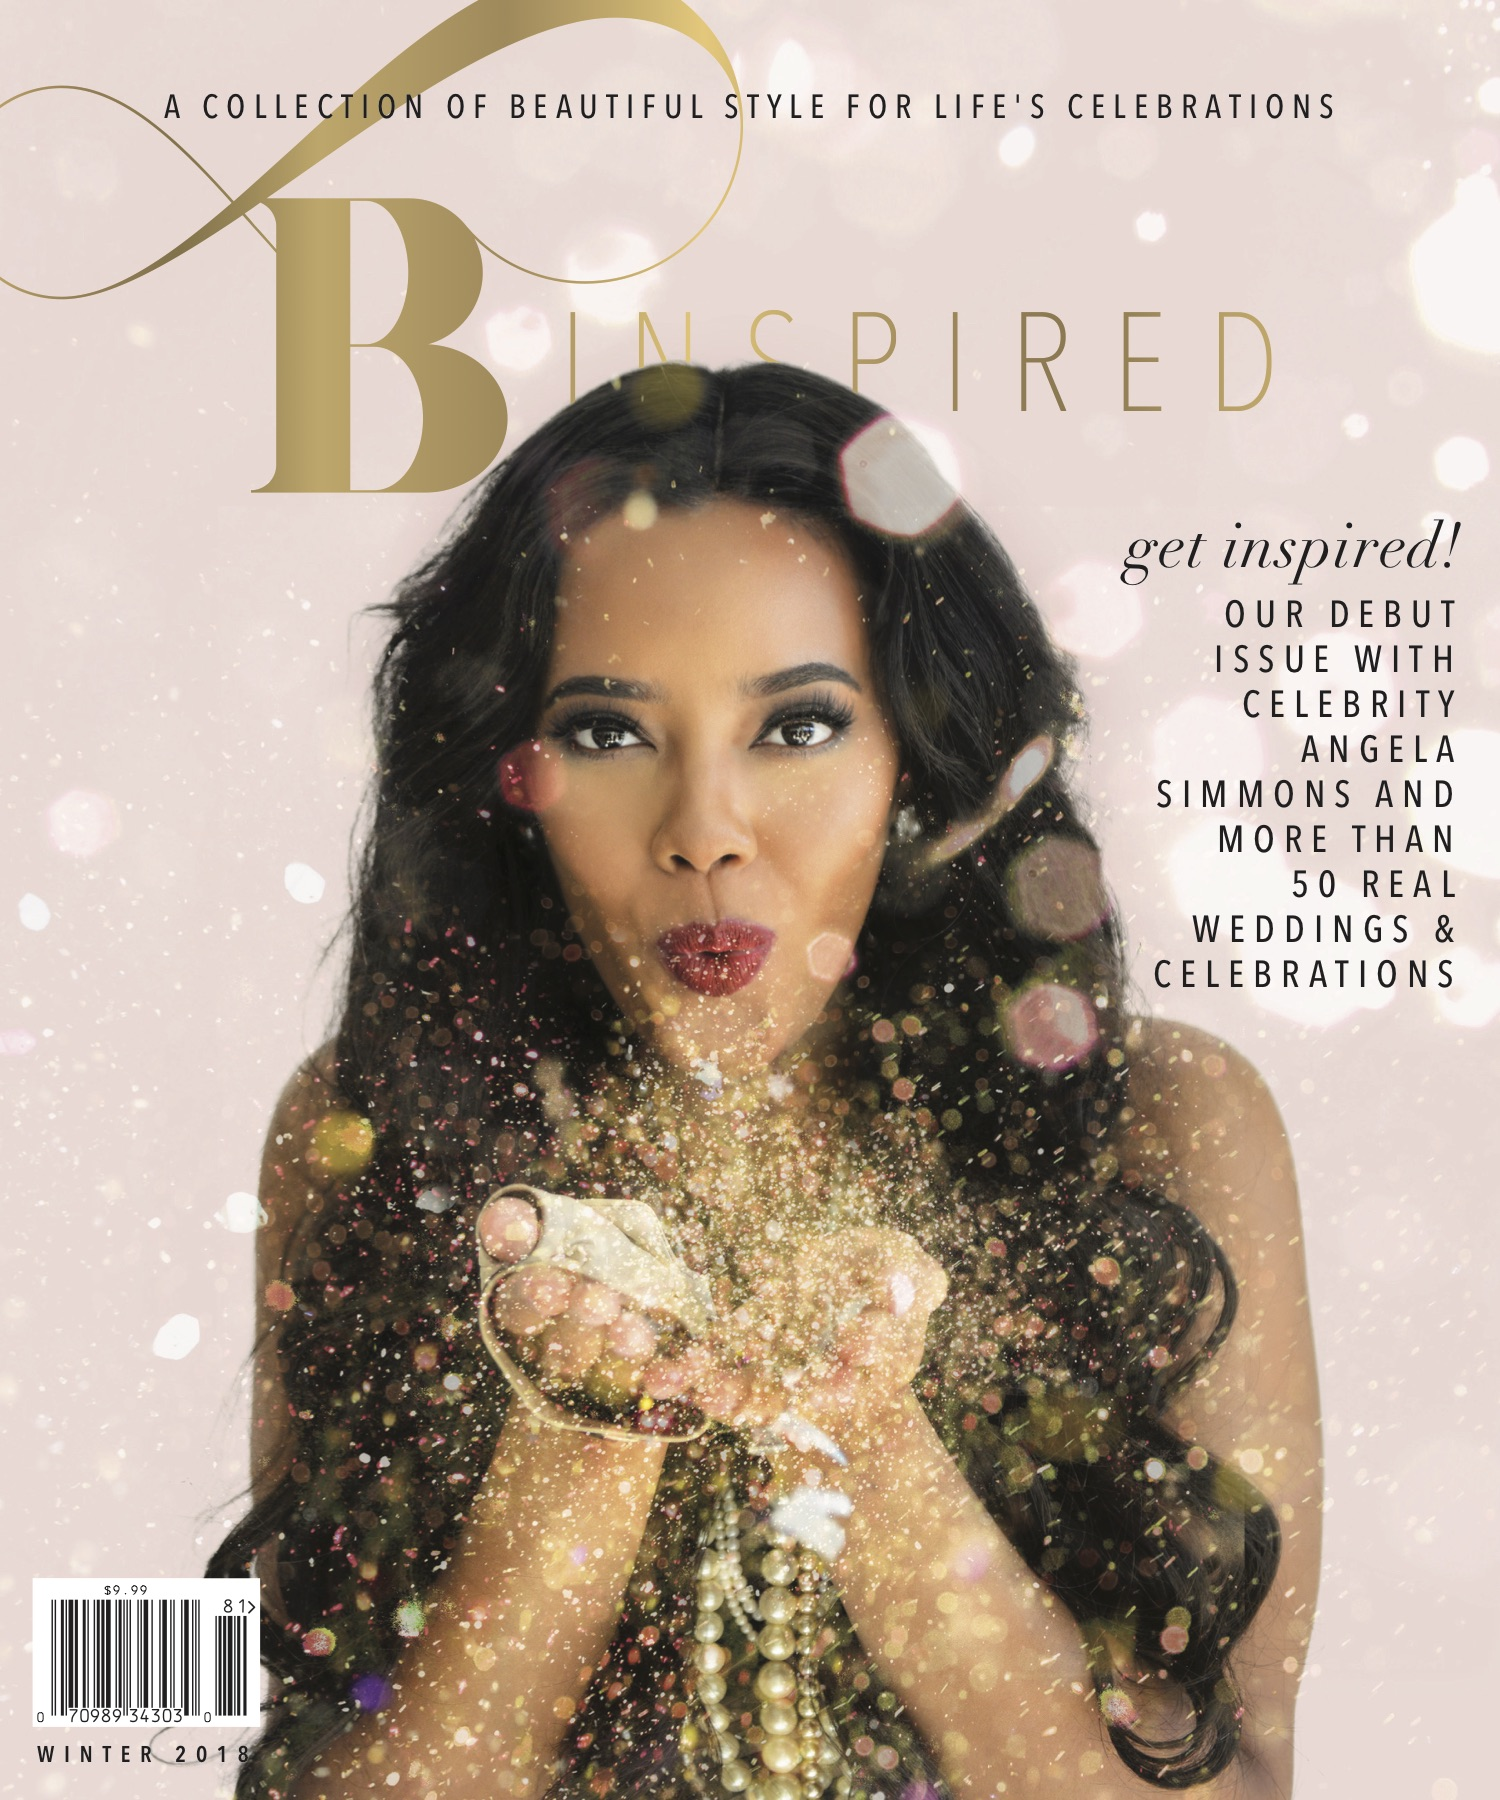 Featured - We have two features in this luxurious magazine. Cover featuring @angelasimmons shot by @inijephoto. @binspiredthemag can be found in local stores near you!